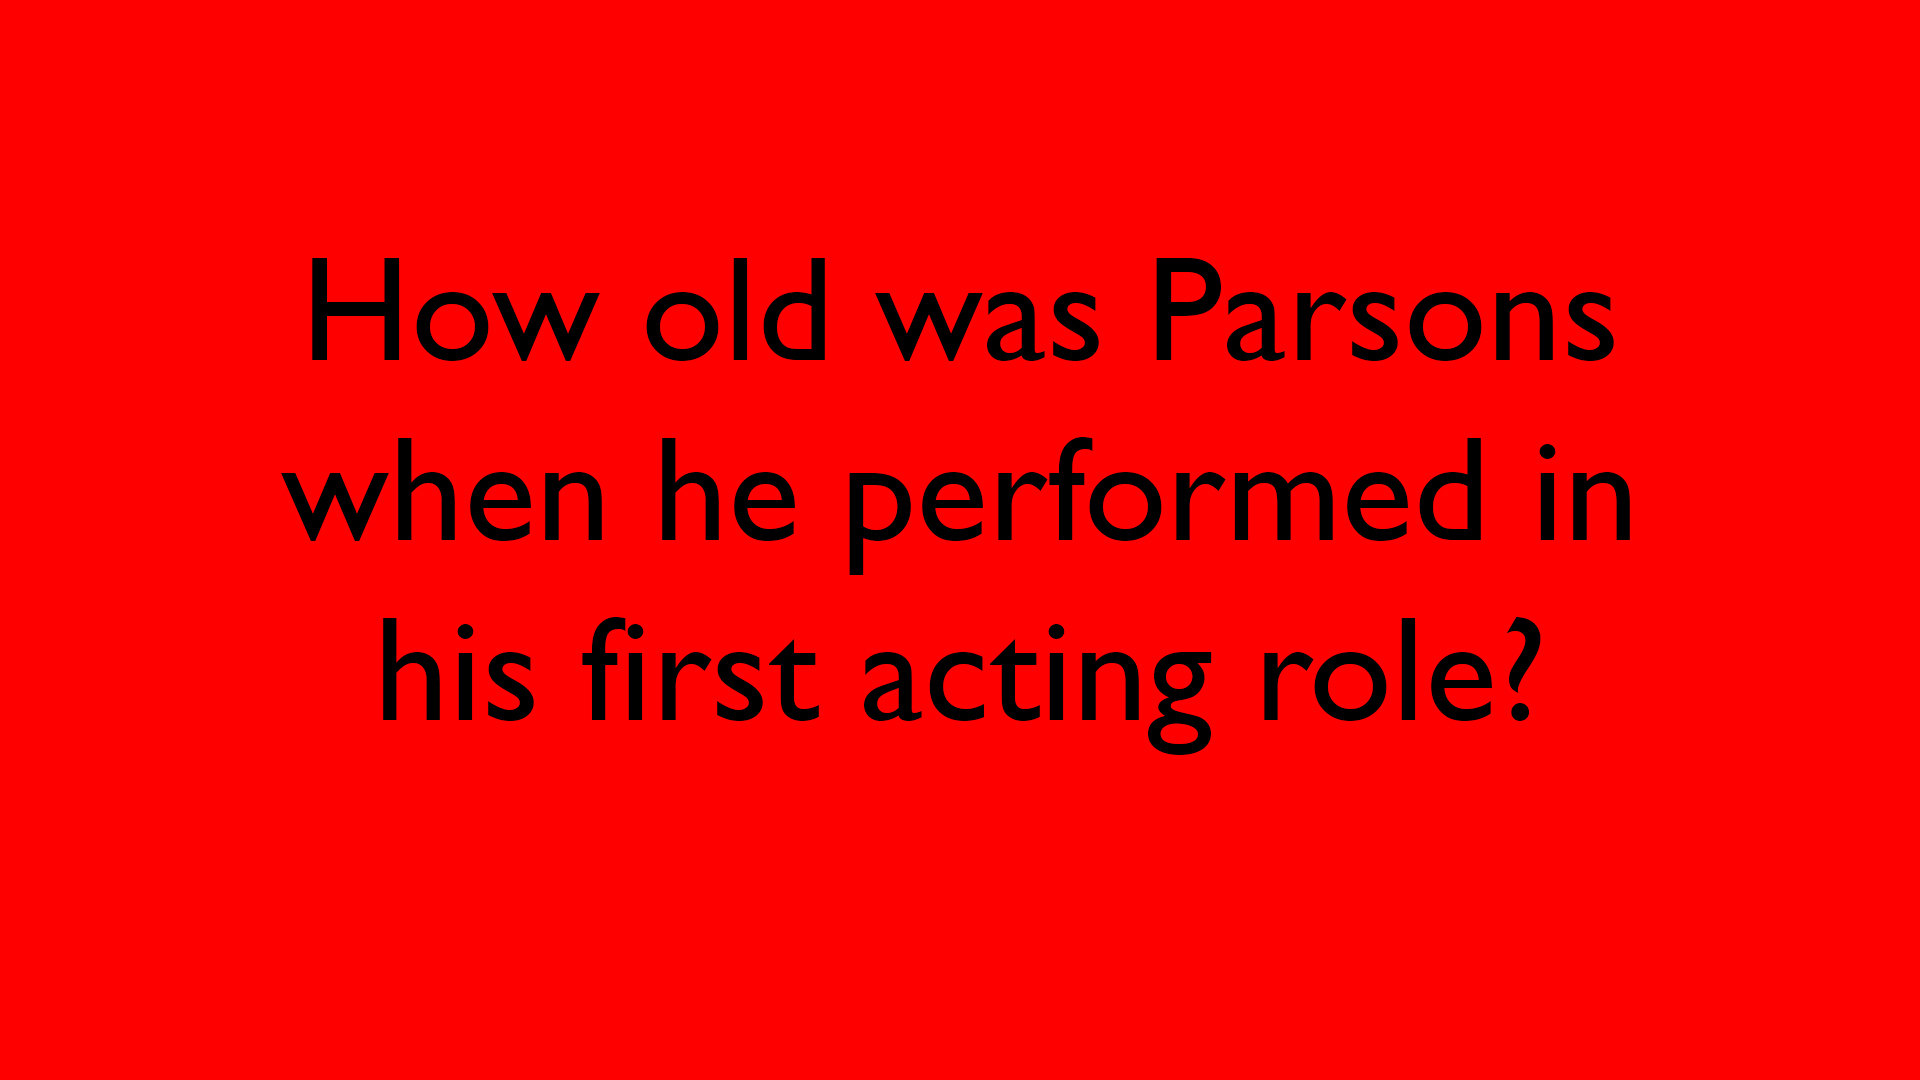 How old was Parsons when he performed in his first acting role?